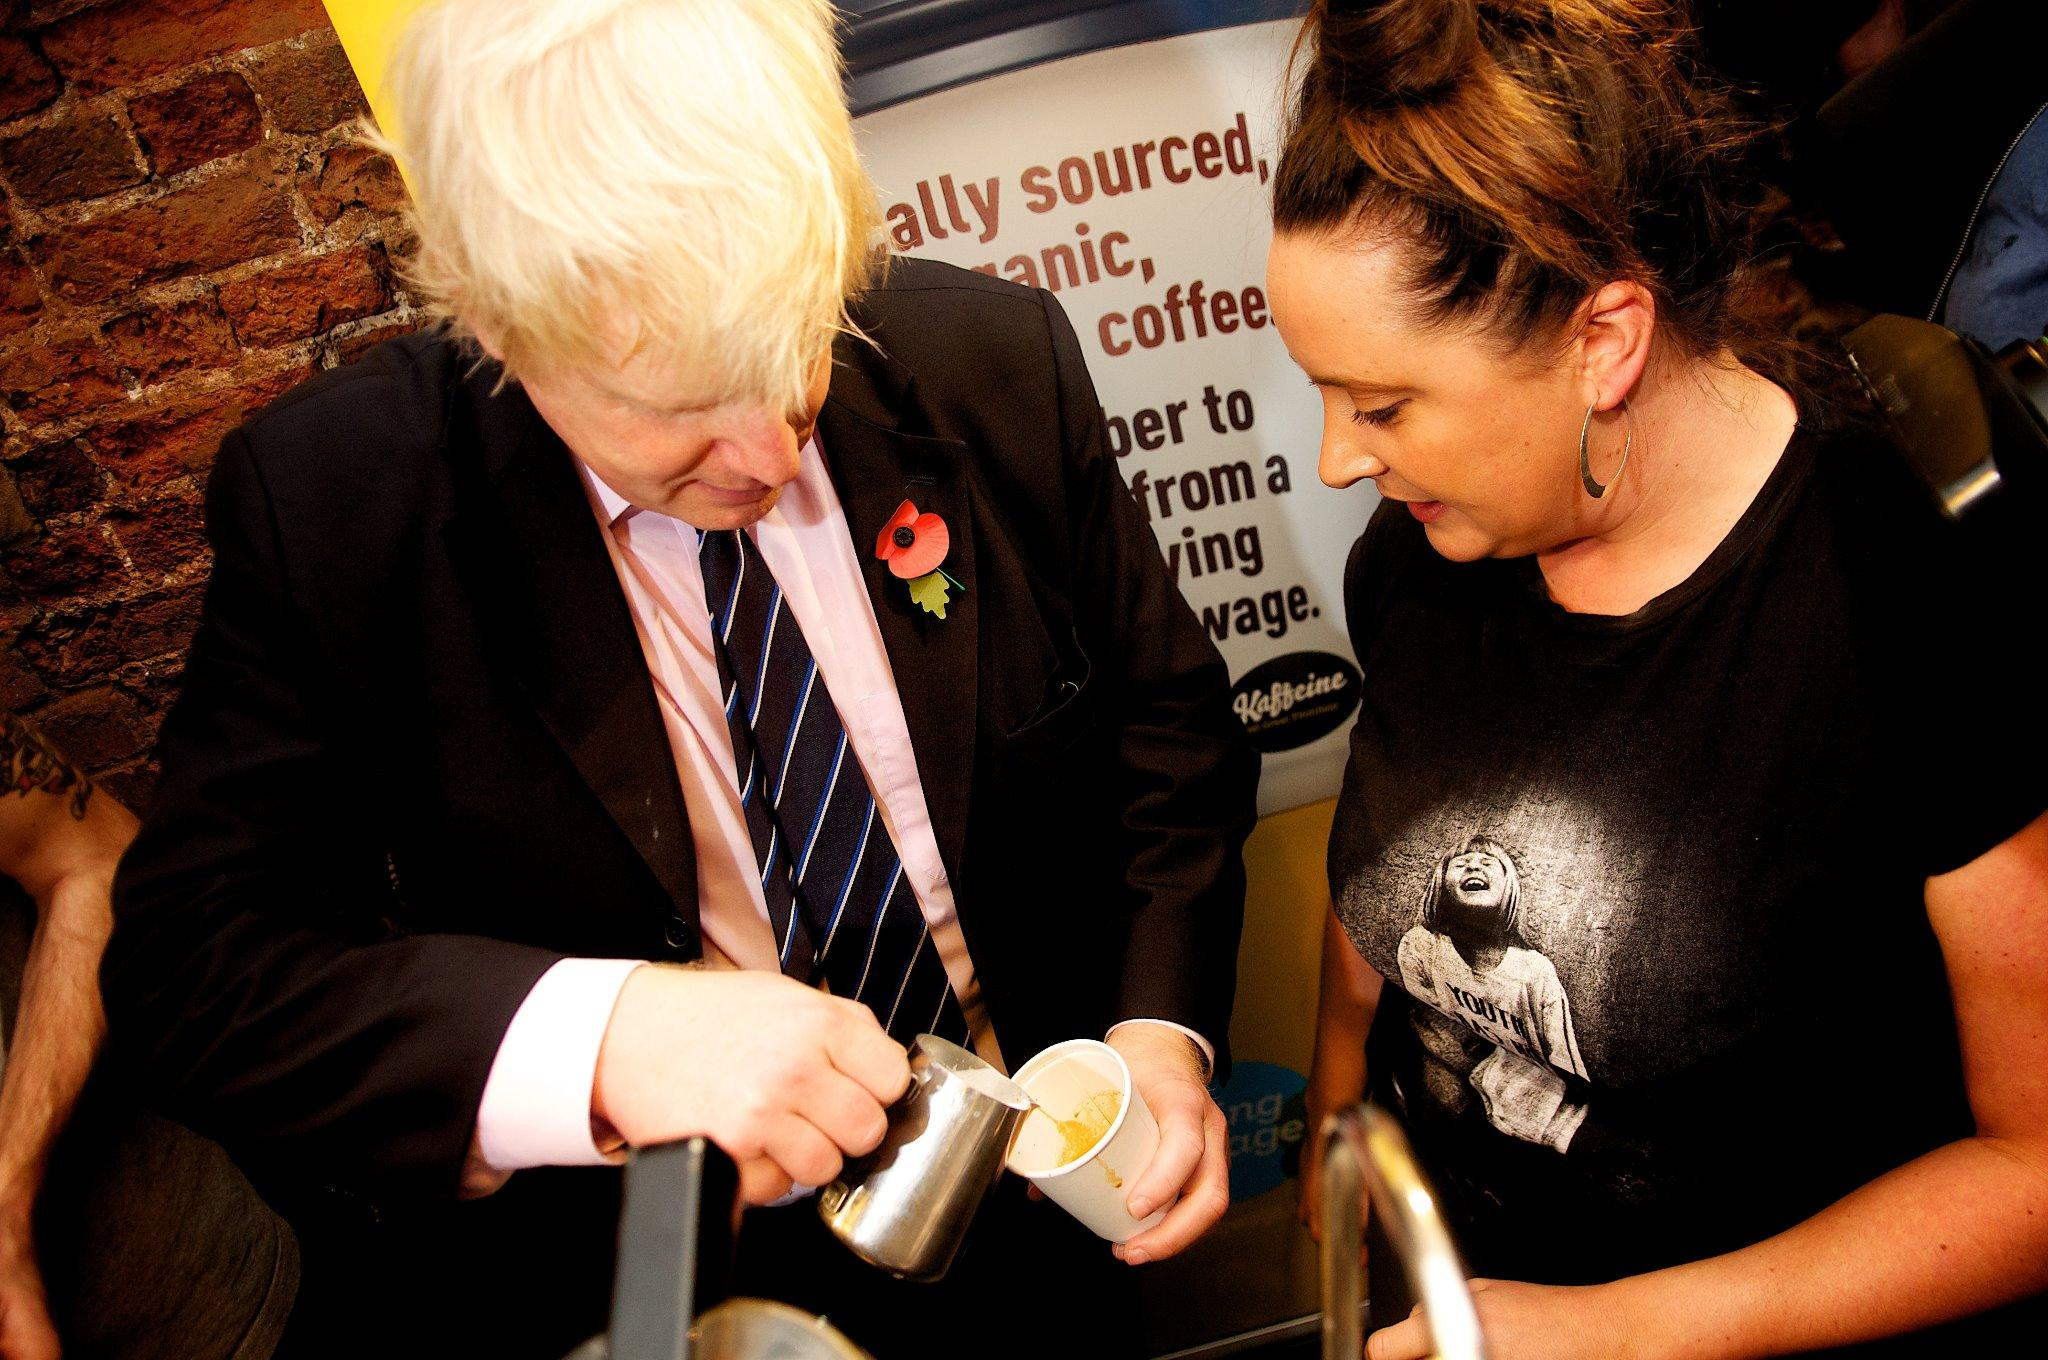 2/2 - I met the very happy staff at the fantastic @kaffeinelondon - a great small London business that pays the LLW http://t.co/UzbISvmTX3